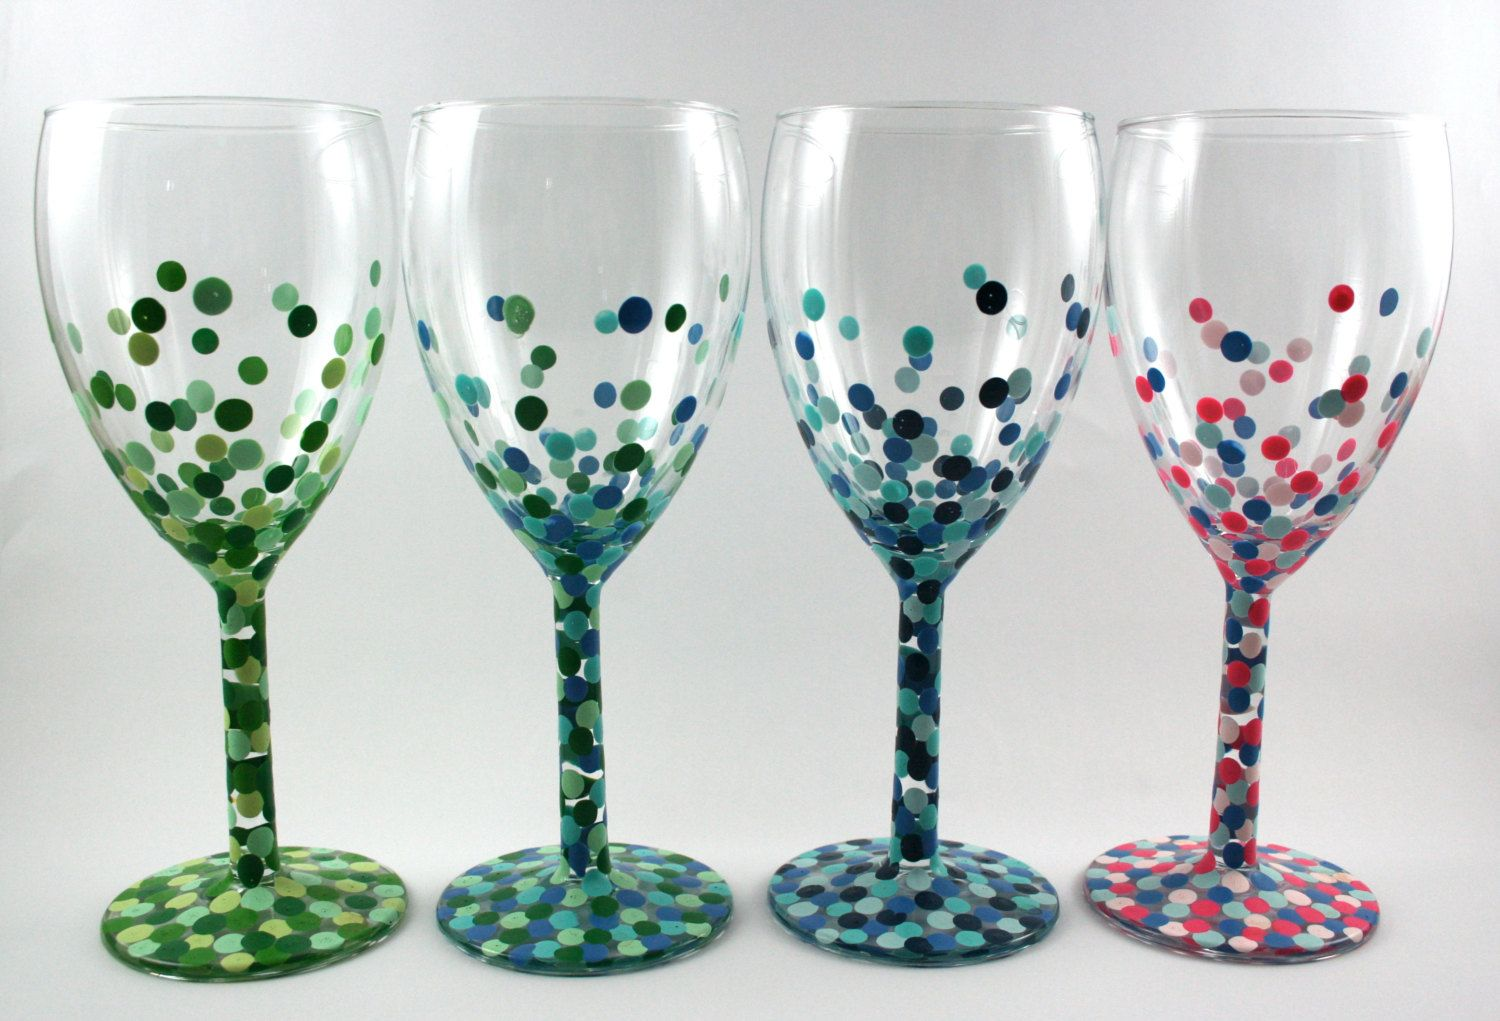 stunning wine glass design ideas photos decorating interior - Wine Glass Design Ideas